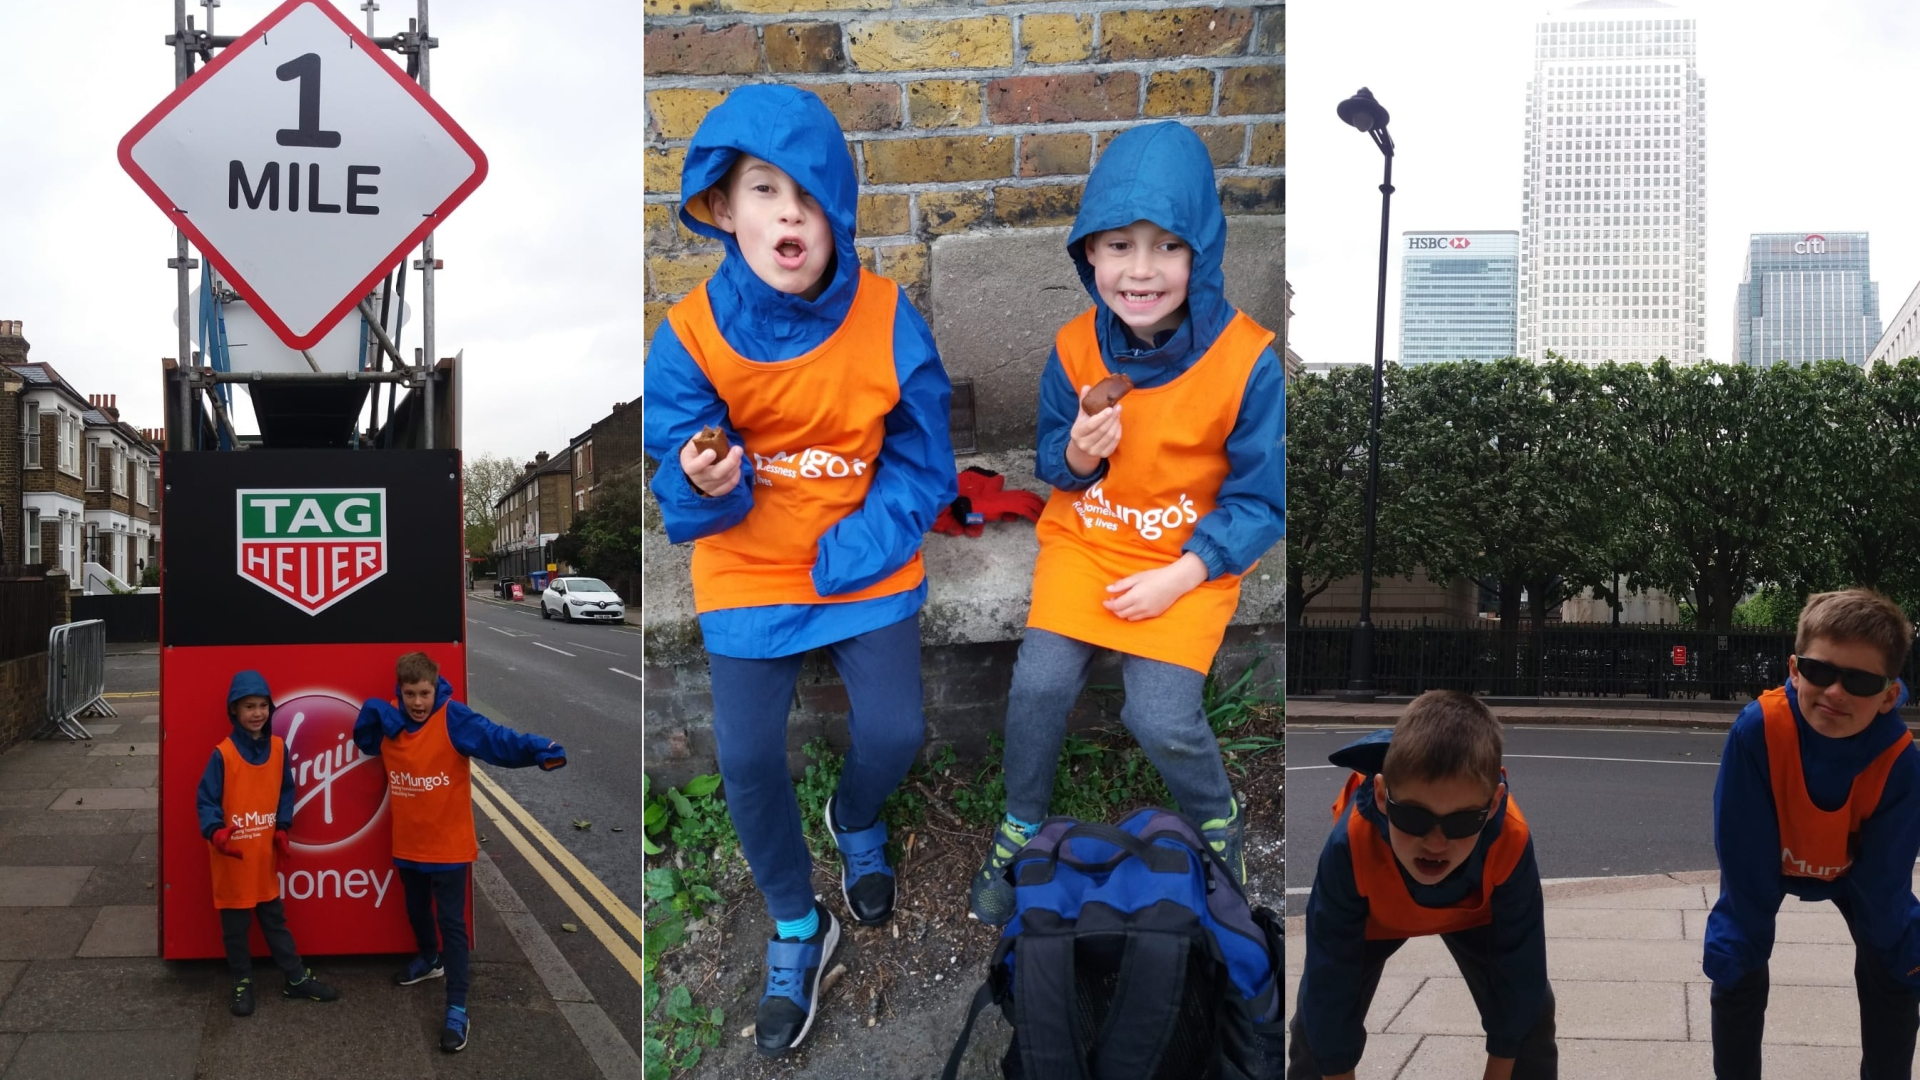 Nicholas and Alex walk the London Marathon route